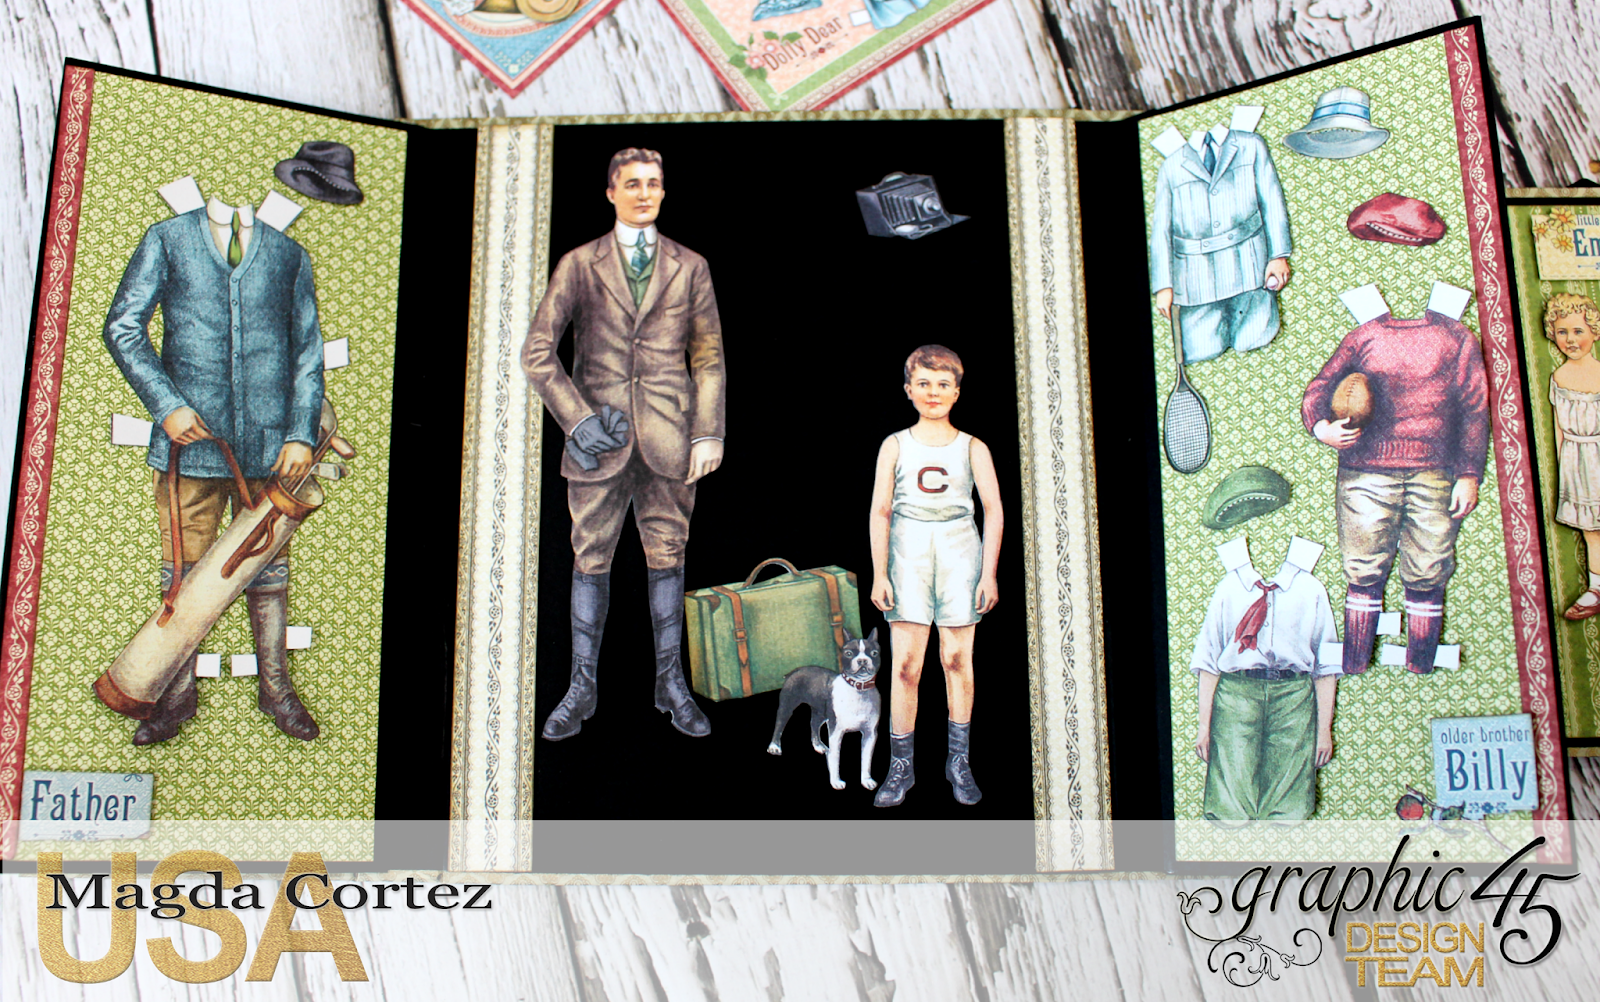 Penny's Paper Doll Family Book, Penny's Paper Doll Family, By Magda Cortez, Product of Graphic45, Photo 10 of 12.png